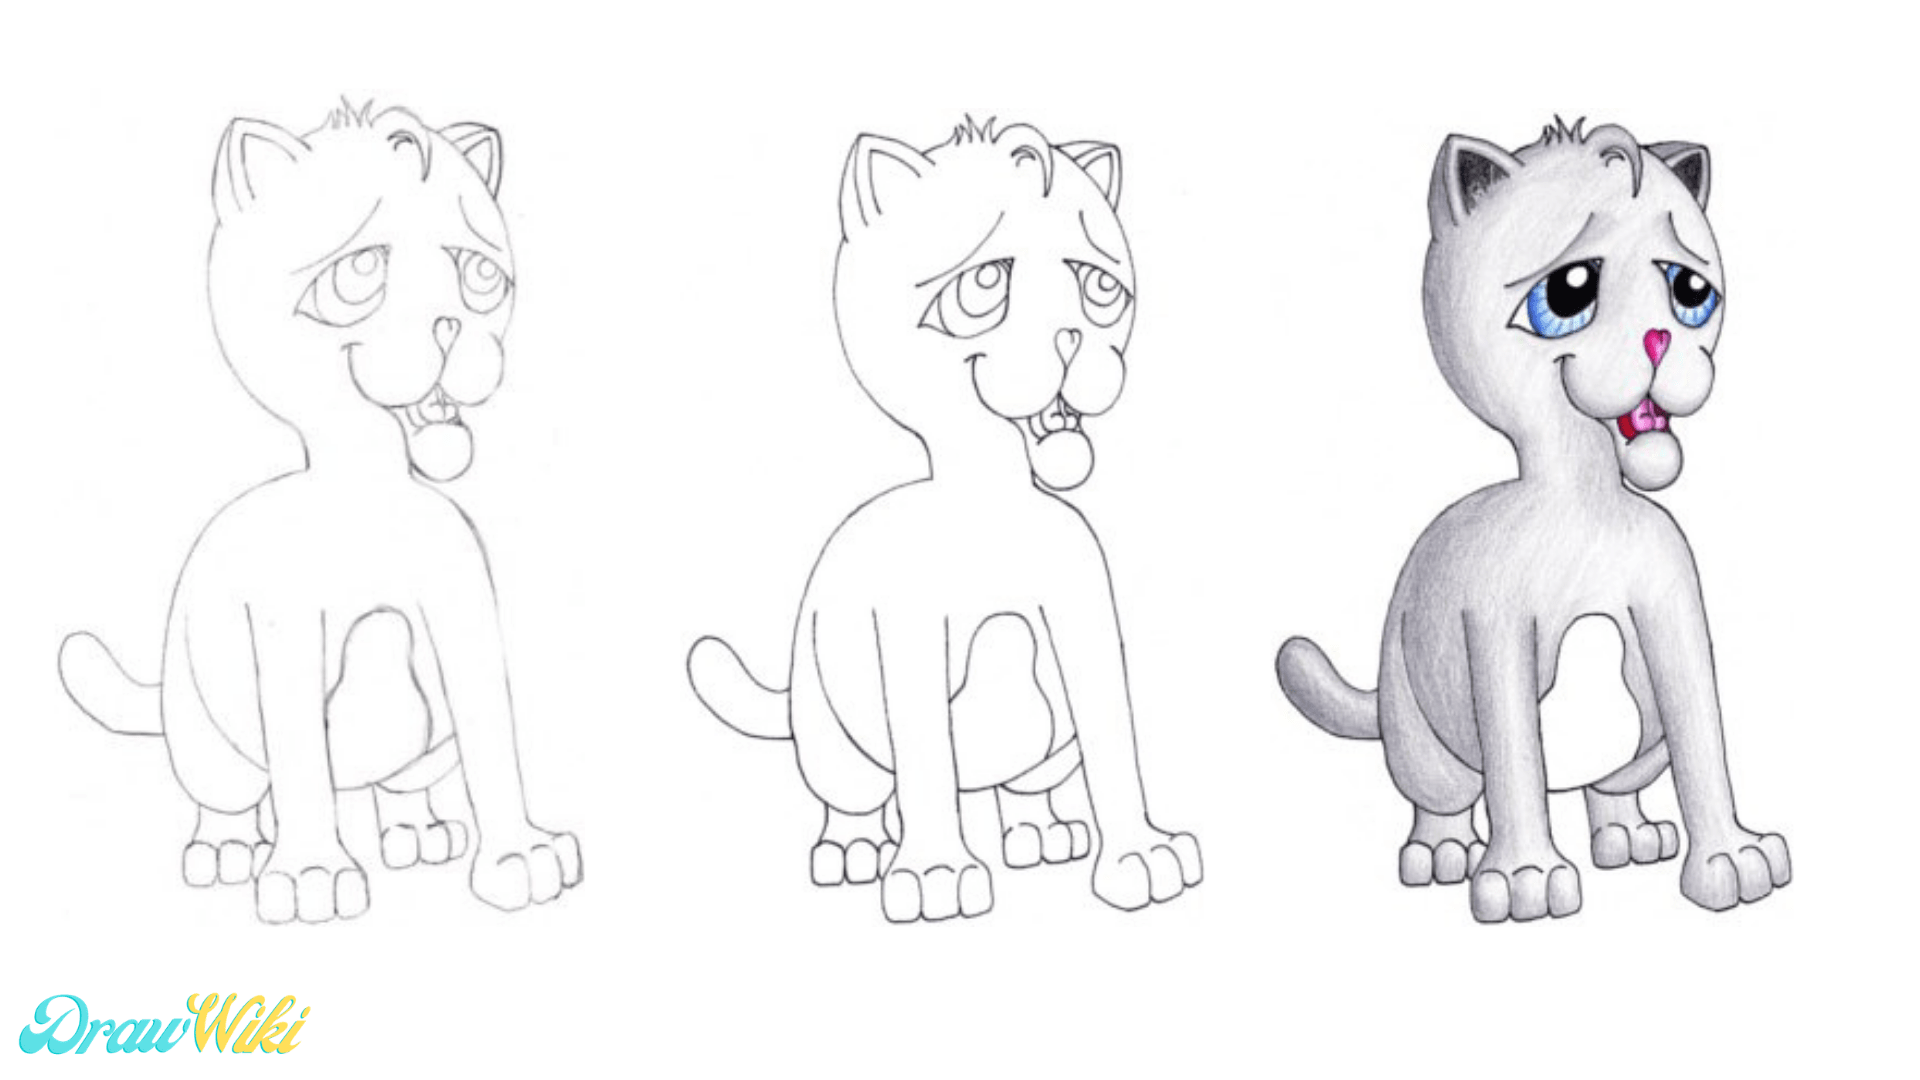 Step 8: Draw The Kittens Cartoon Fur Pattern, Inking, And Coloring